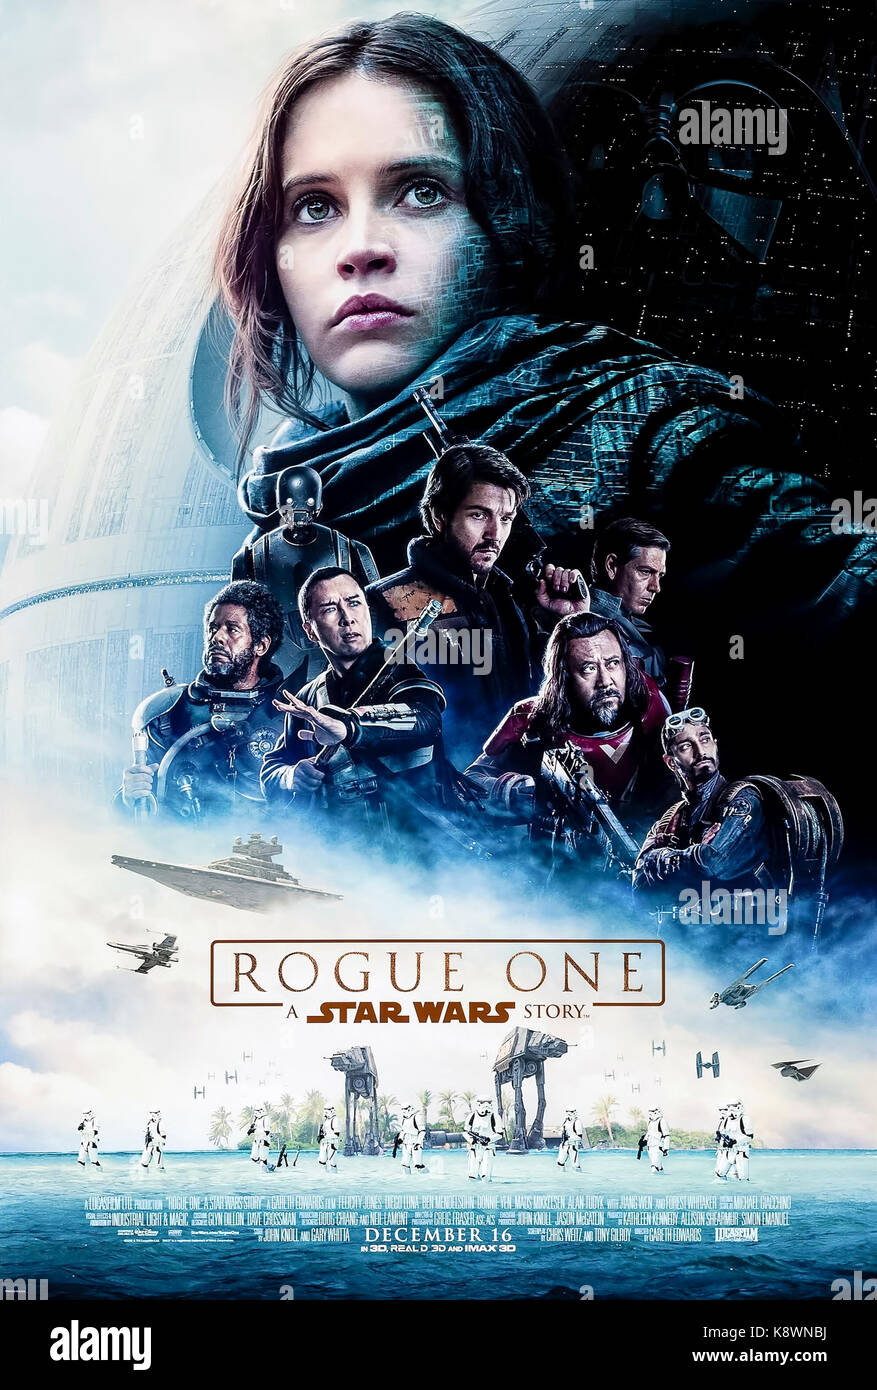 Rogue One (2016) directed by Gareth Edwards and starring Felicity Jones, Diego Luna and Alan Tudyk. Star Wars film - Stock Image